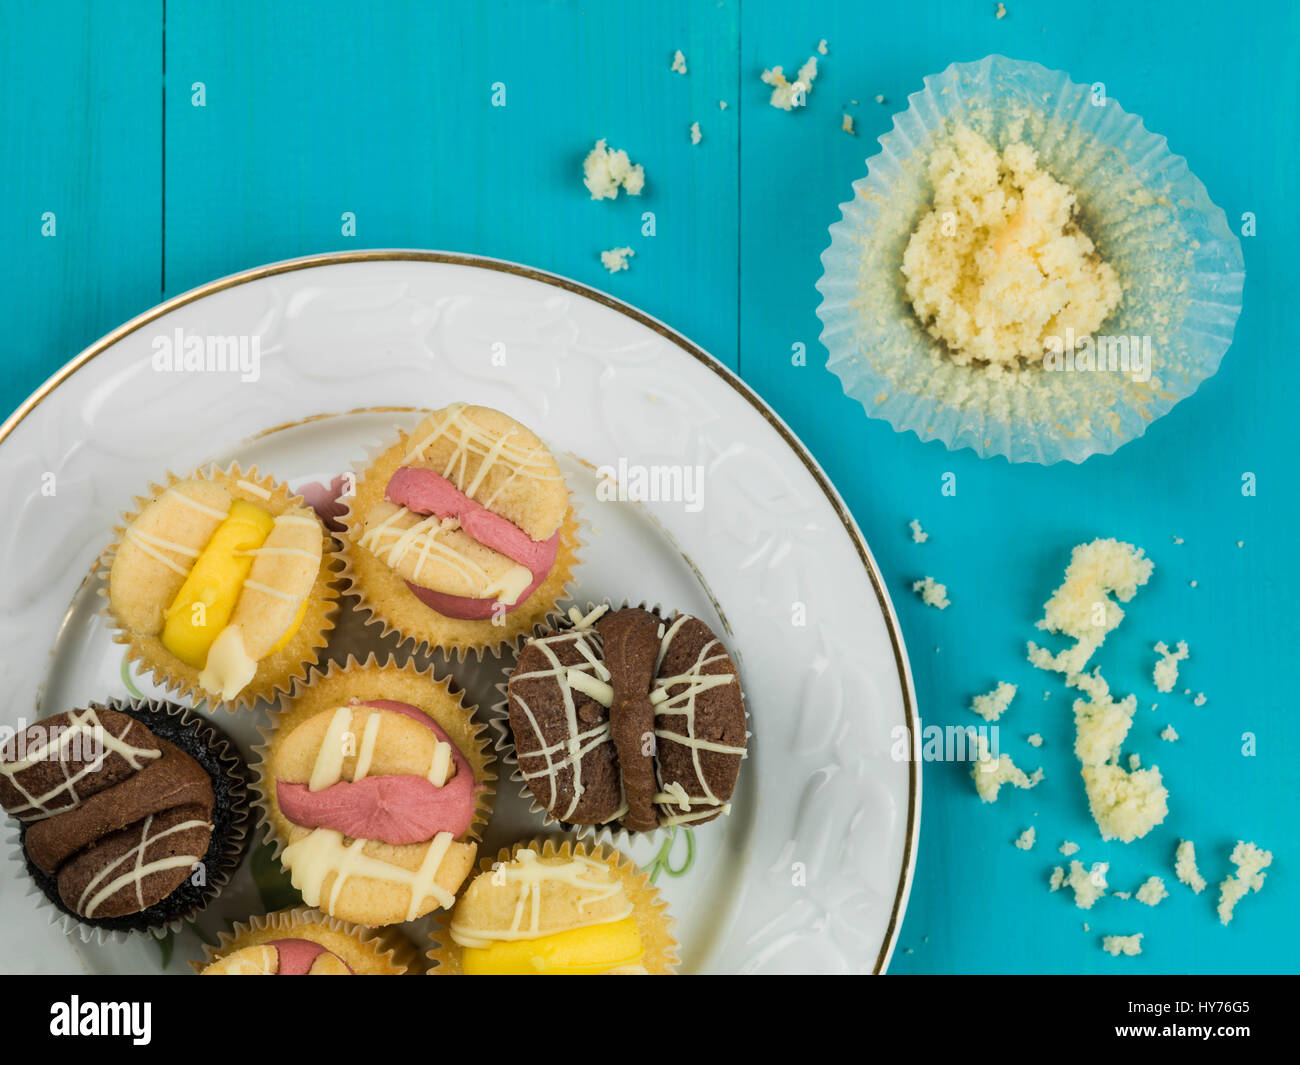 Selection of Easter Butterfly Cupcakes Against a Blue Background - Stock Image